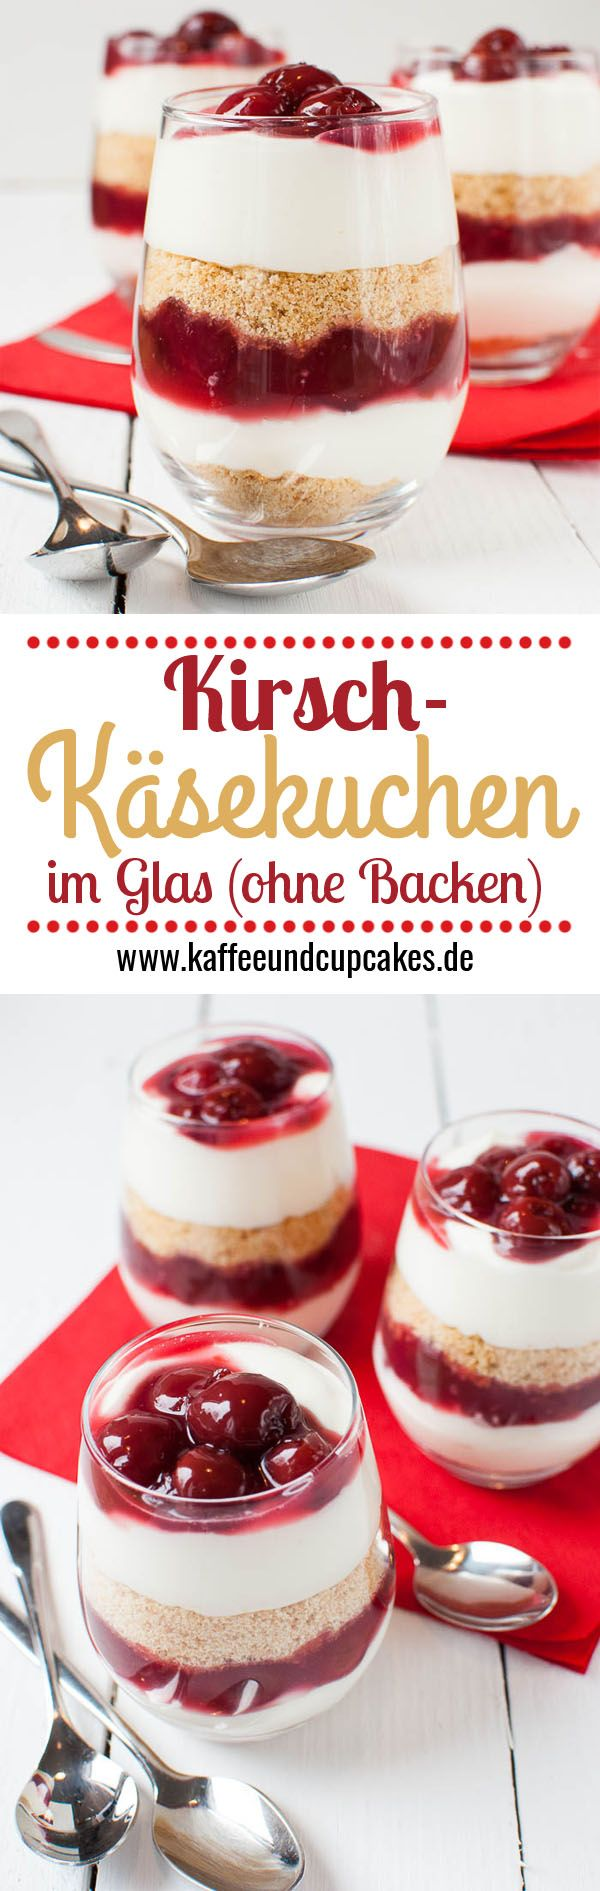 die besten 25 dessert rezepte ideen auf pinterest dessert no bake kuchen und kuchen backen. Black Bedroom Furniture Sets. Home Design Ideas